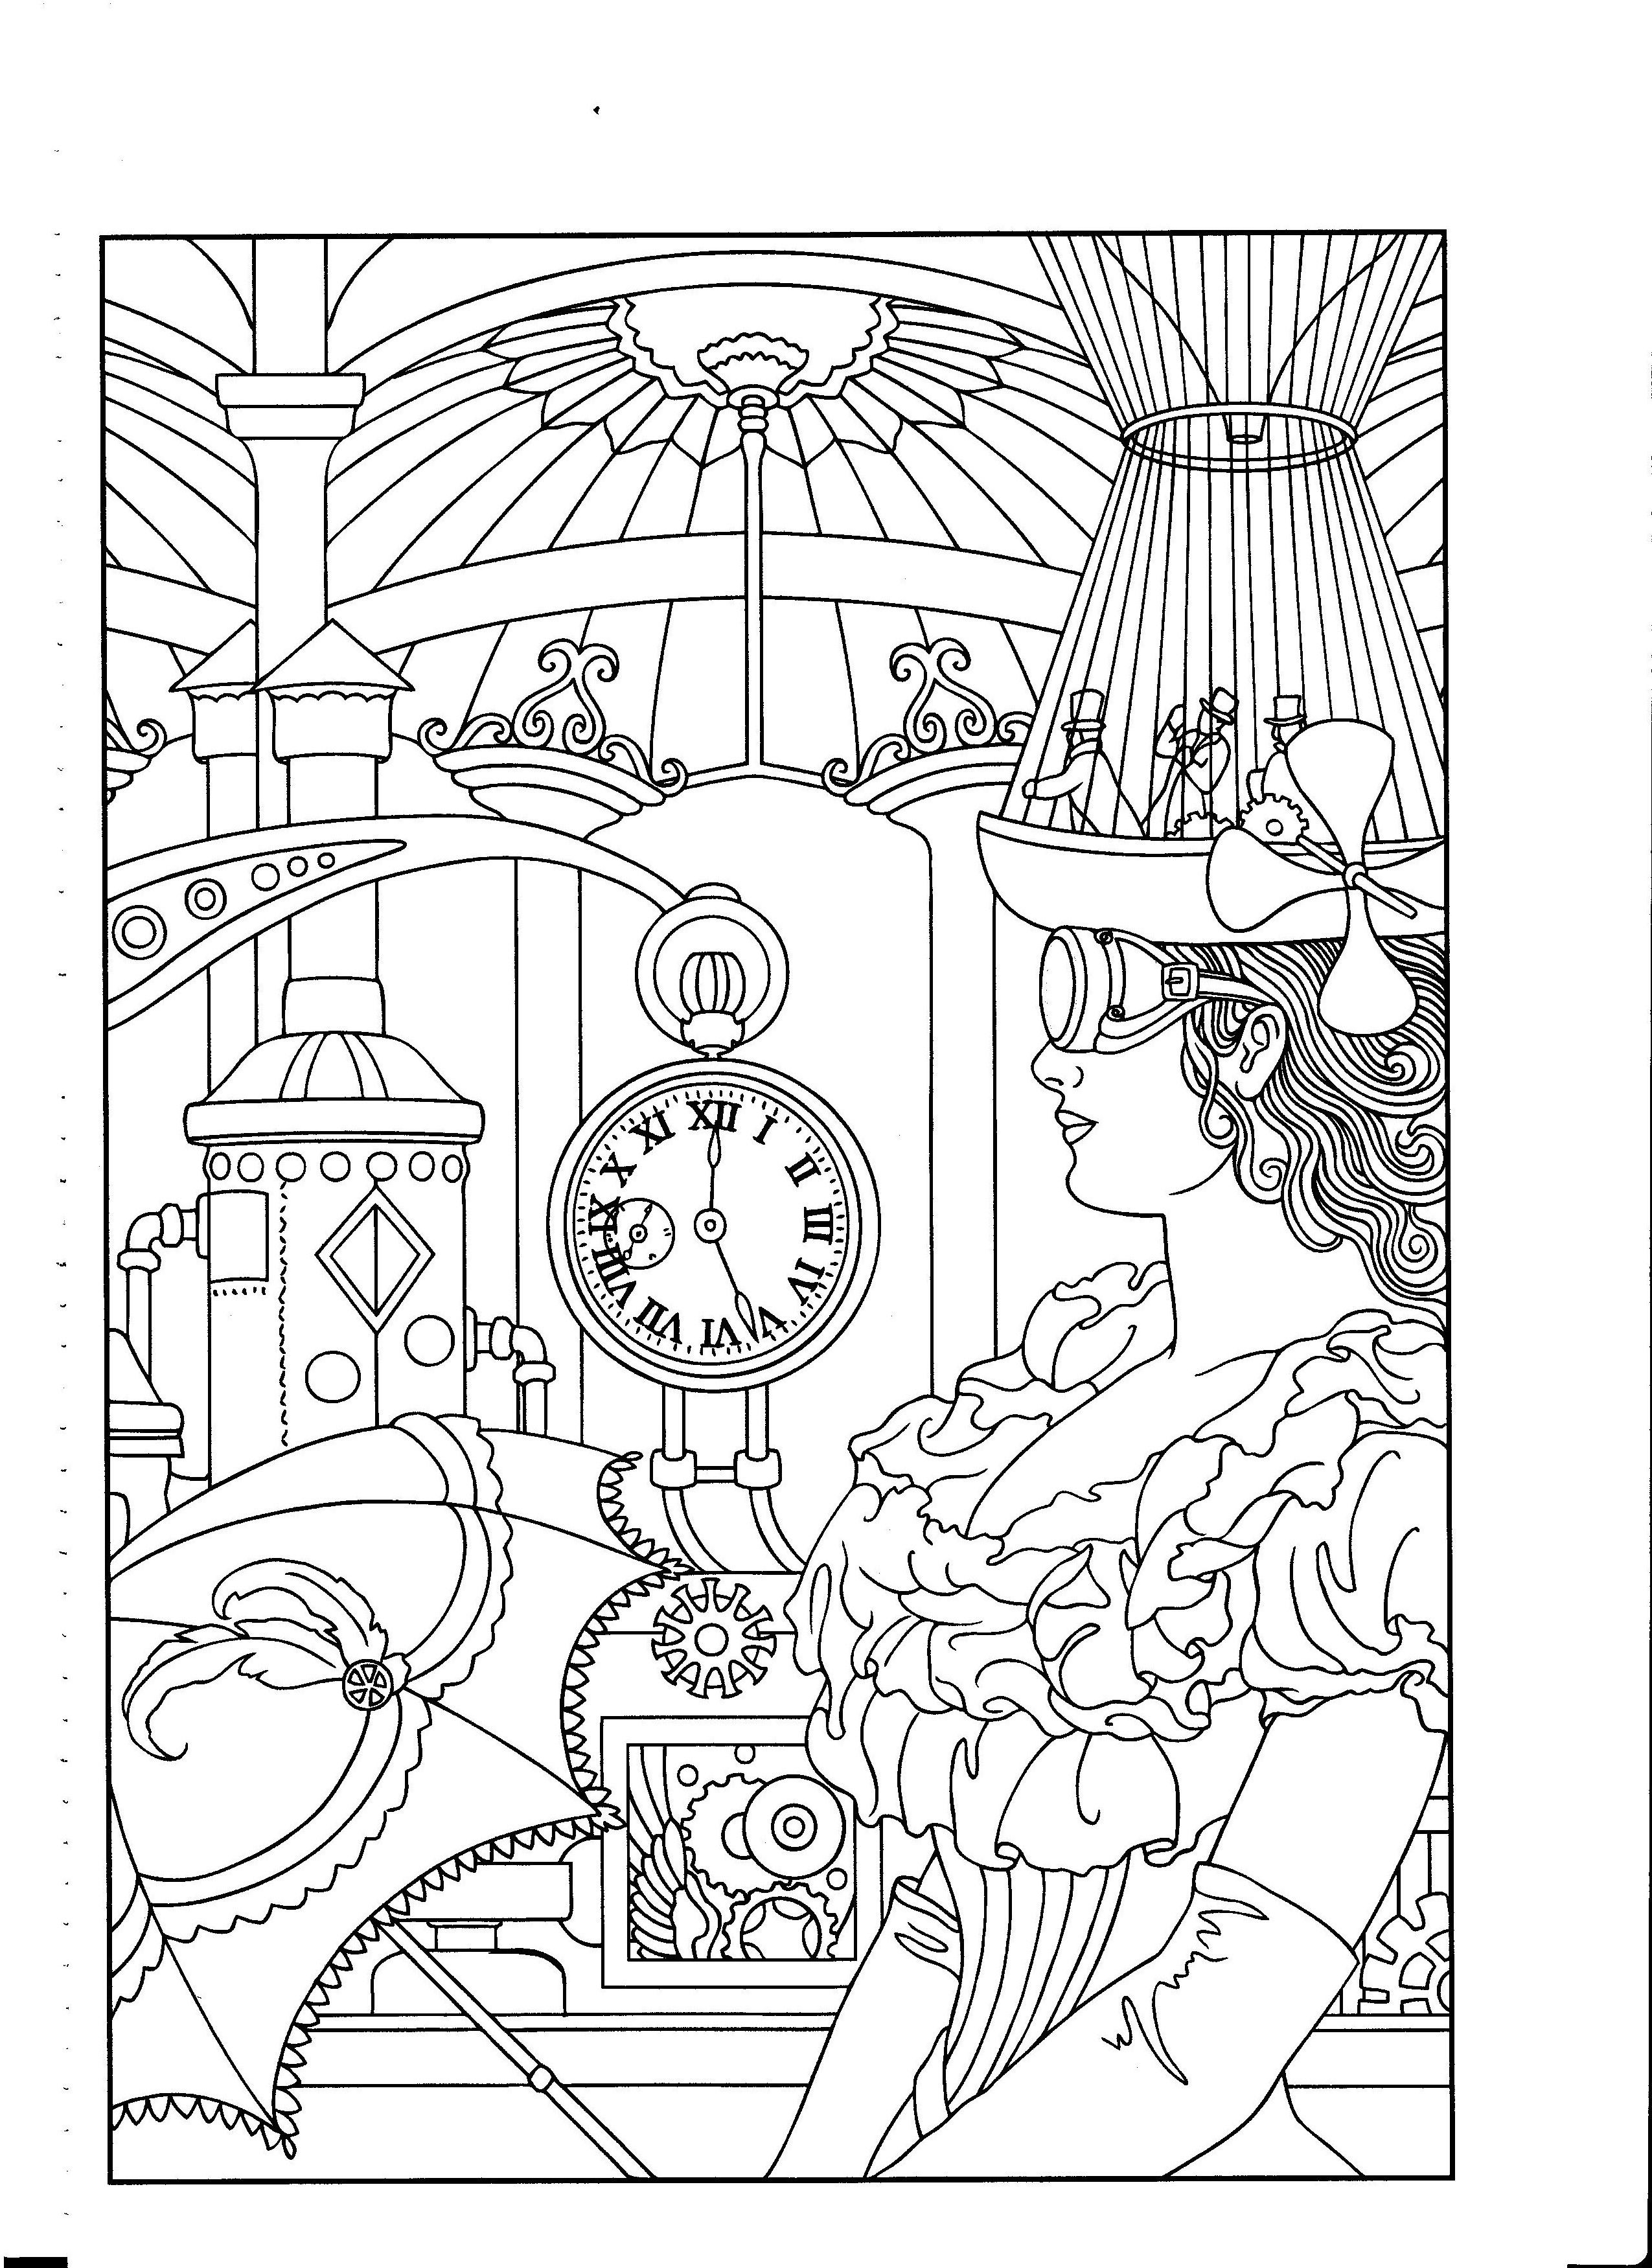 Pin By Coloring Pages For Adults On Steampunk Designs Coloring Books Steampunk Coloring Dubai Khalifa